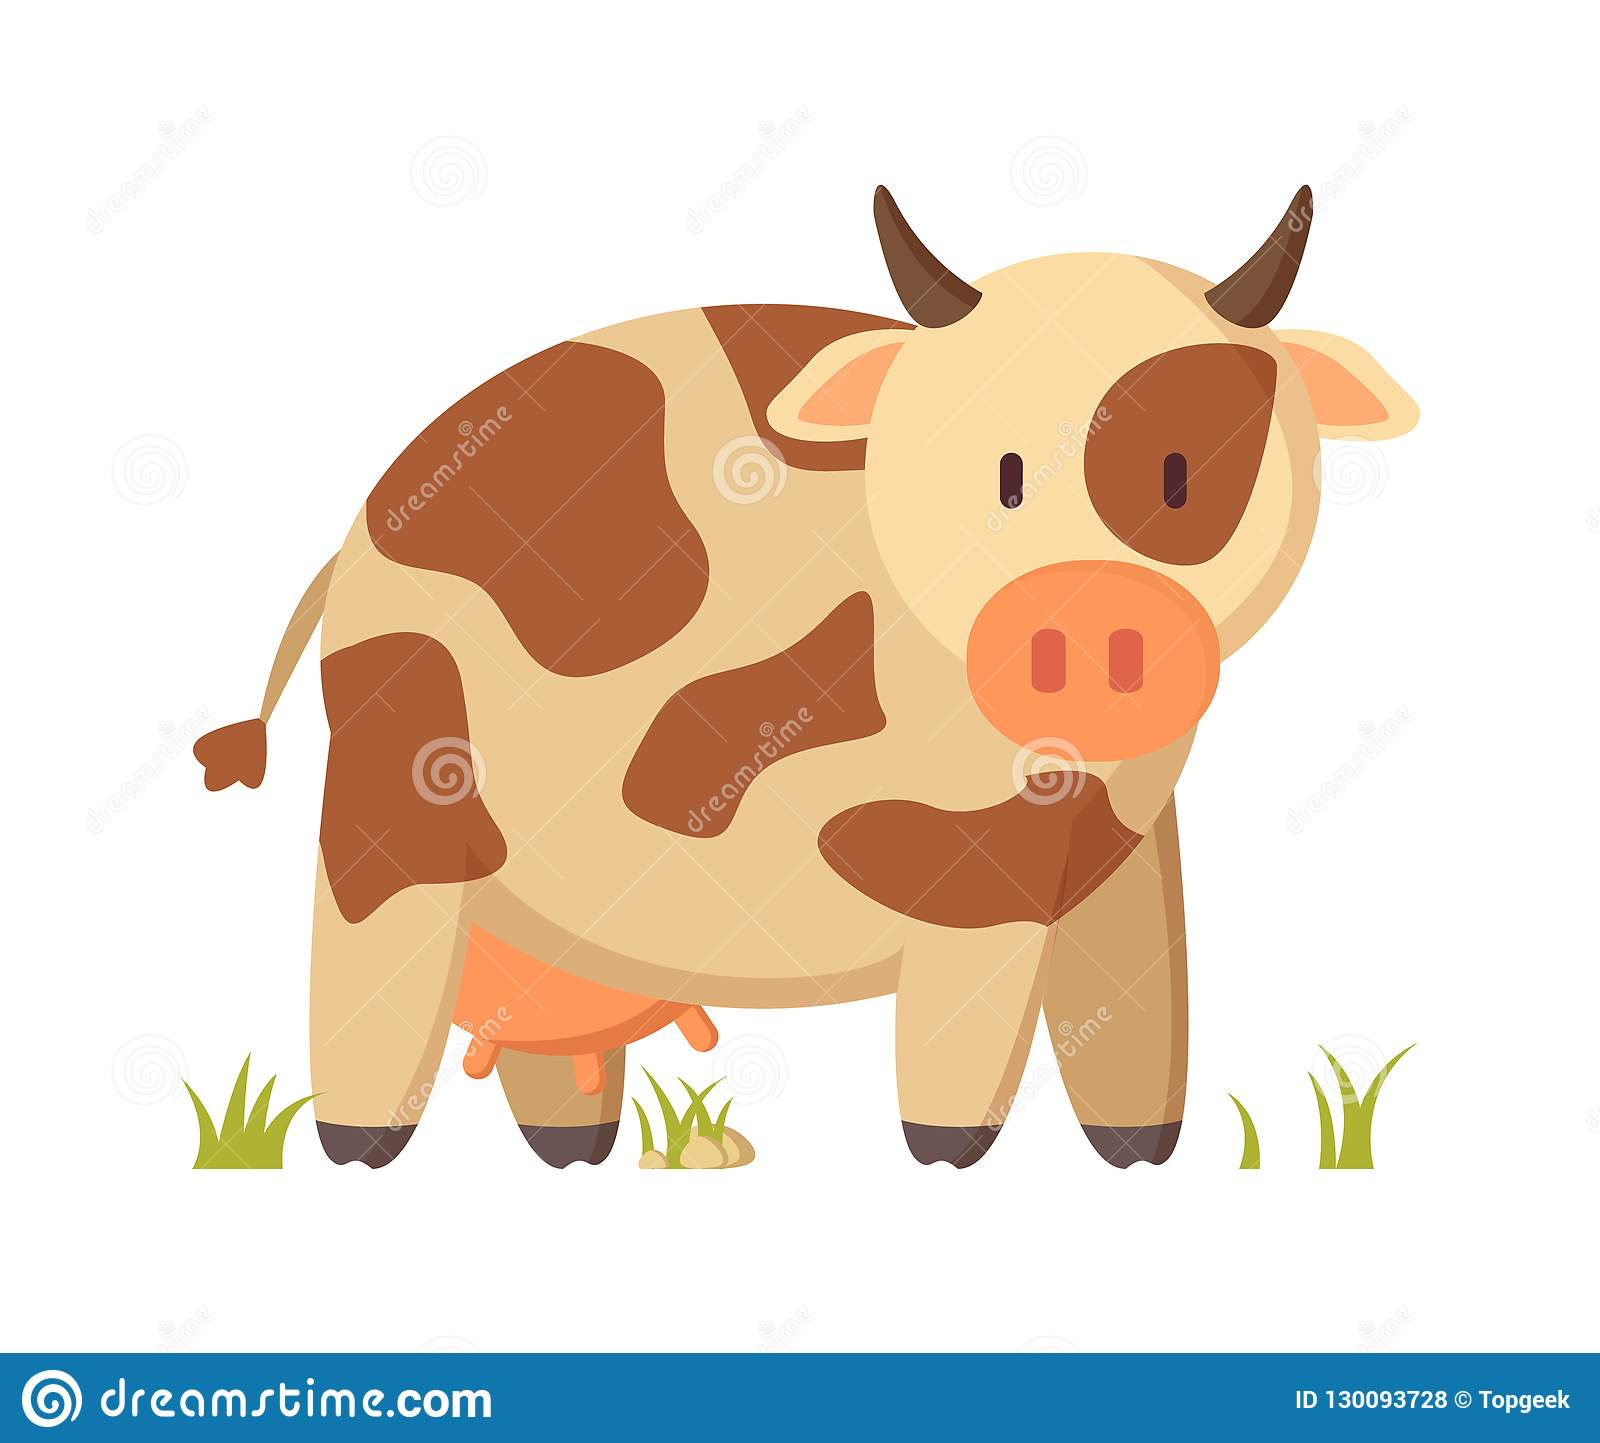 hight resolution of spotted cow farm animal cartoon depiction poster